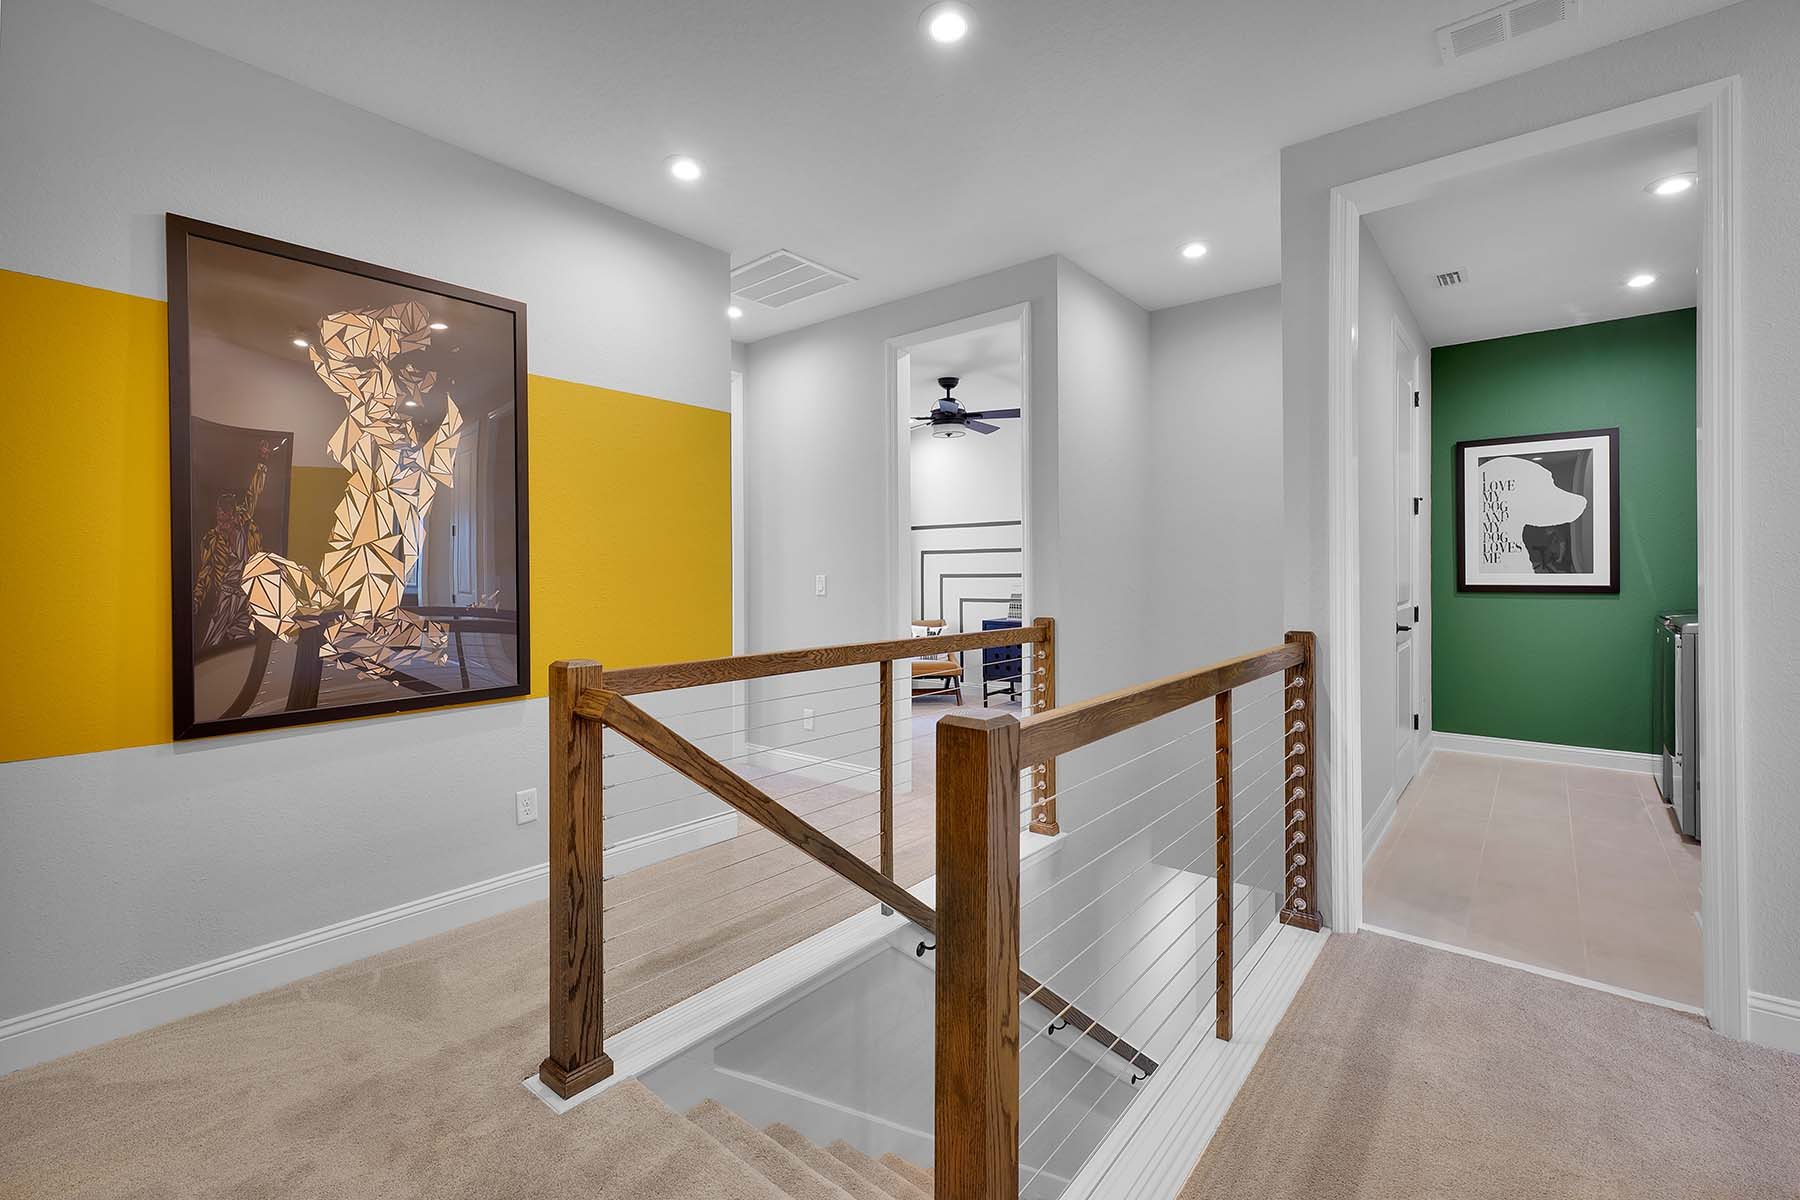 Talise Plan Hallway at Pablo Cove in Jacksonville Florida by Mattamy Homes